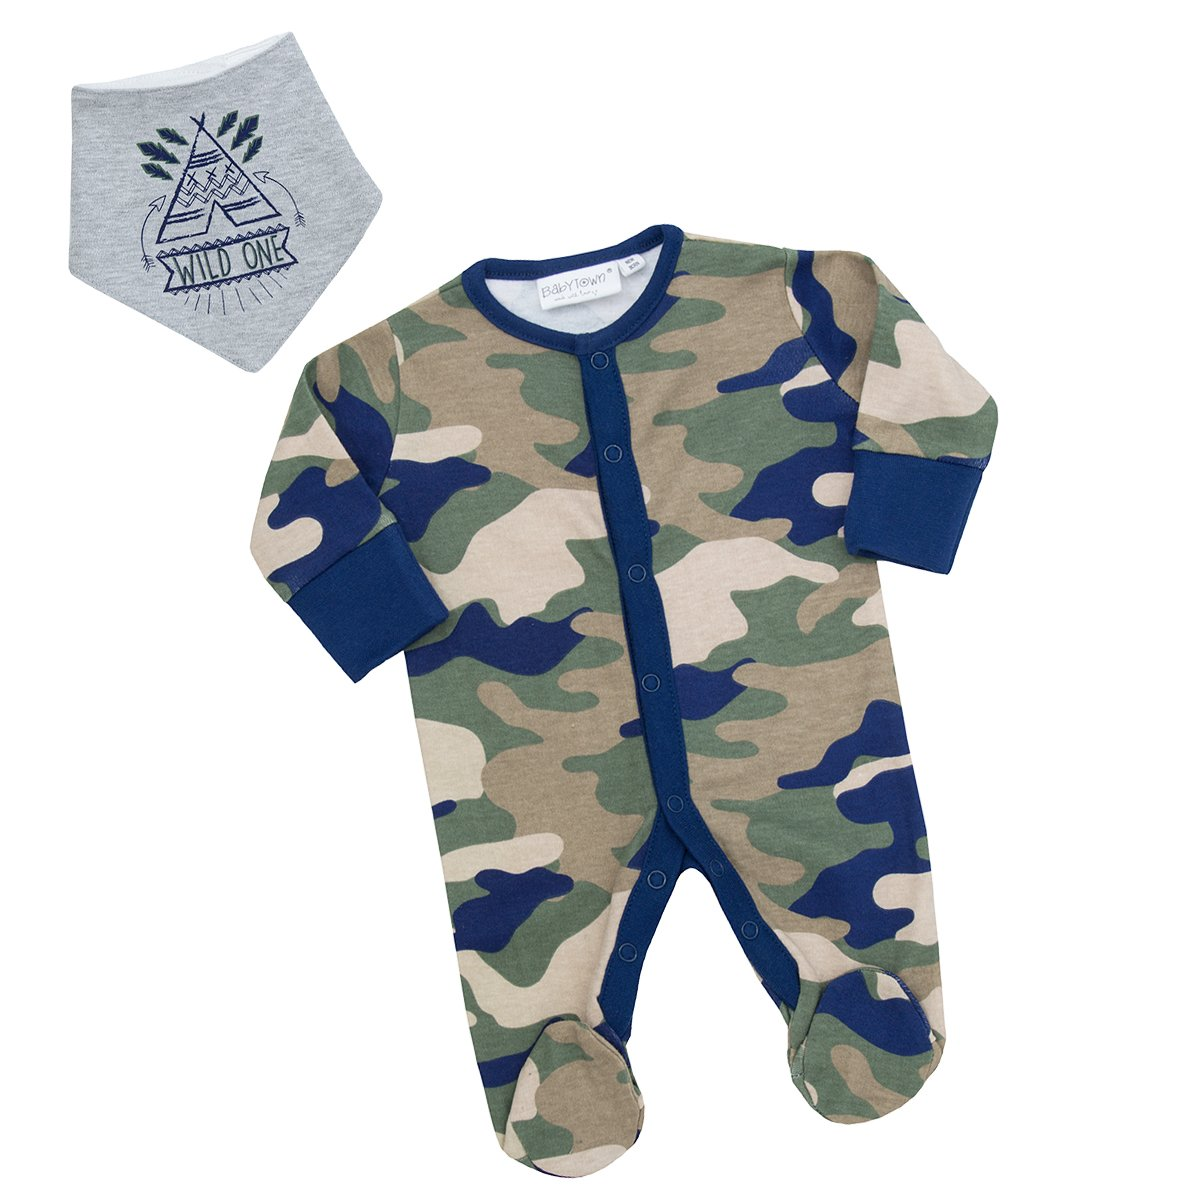 Integrated Scratch Mittens Cotton Rich All-in-One Newborn-9 Months BABY TOWN Baby Boys Camo Safari Sleepsuit